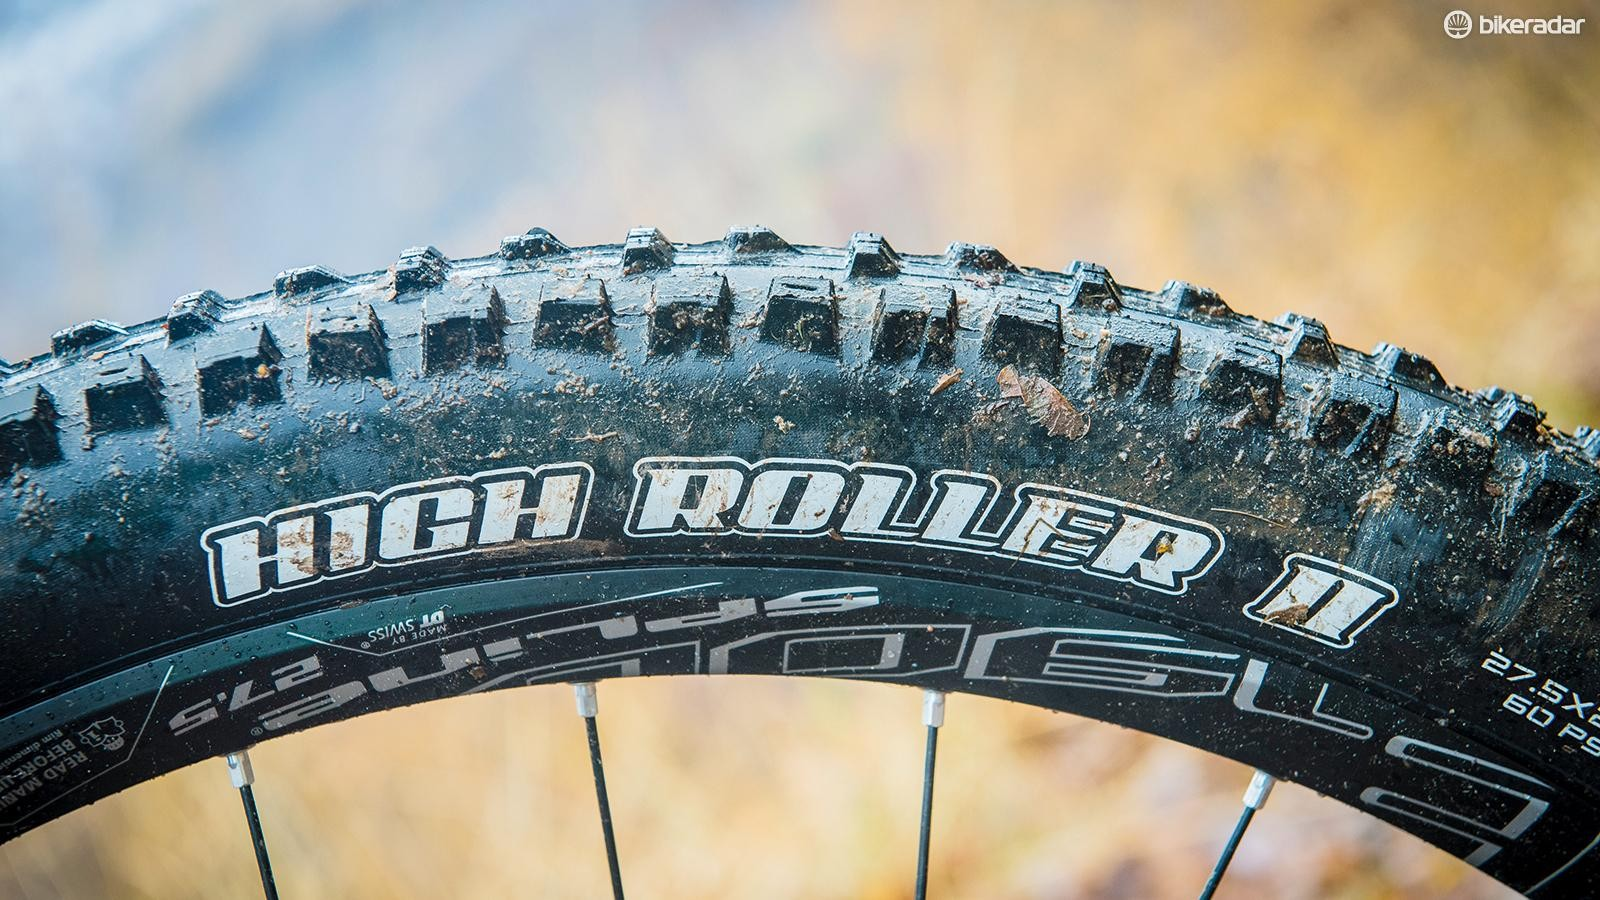 Single compound rubber is a spec disappointment